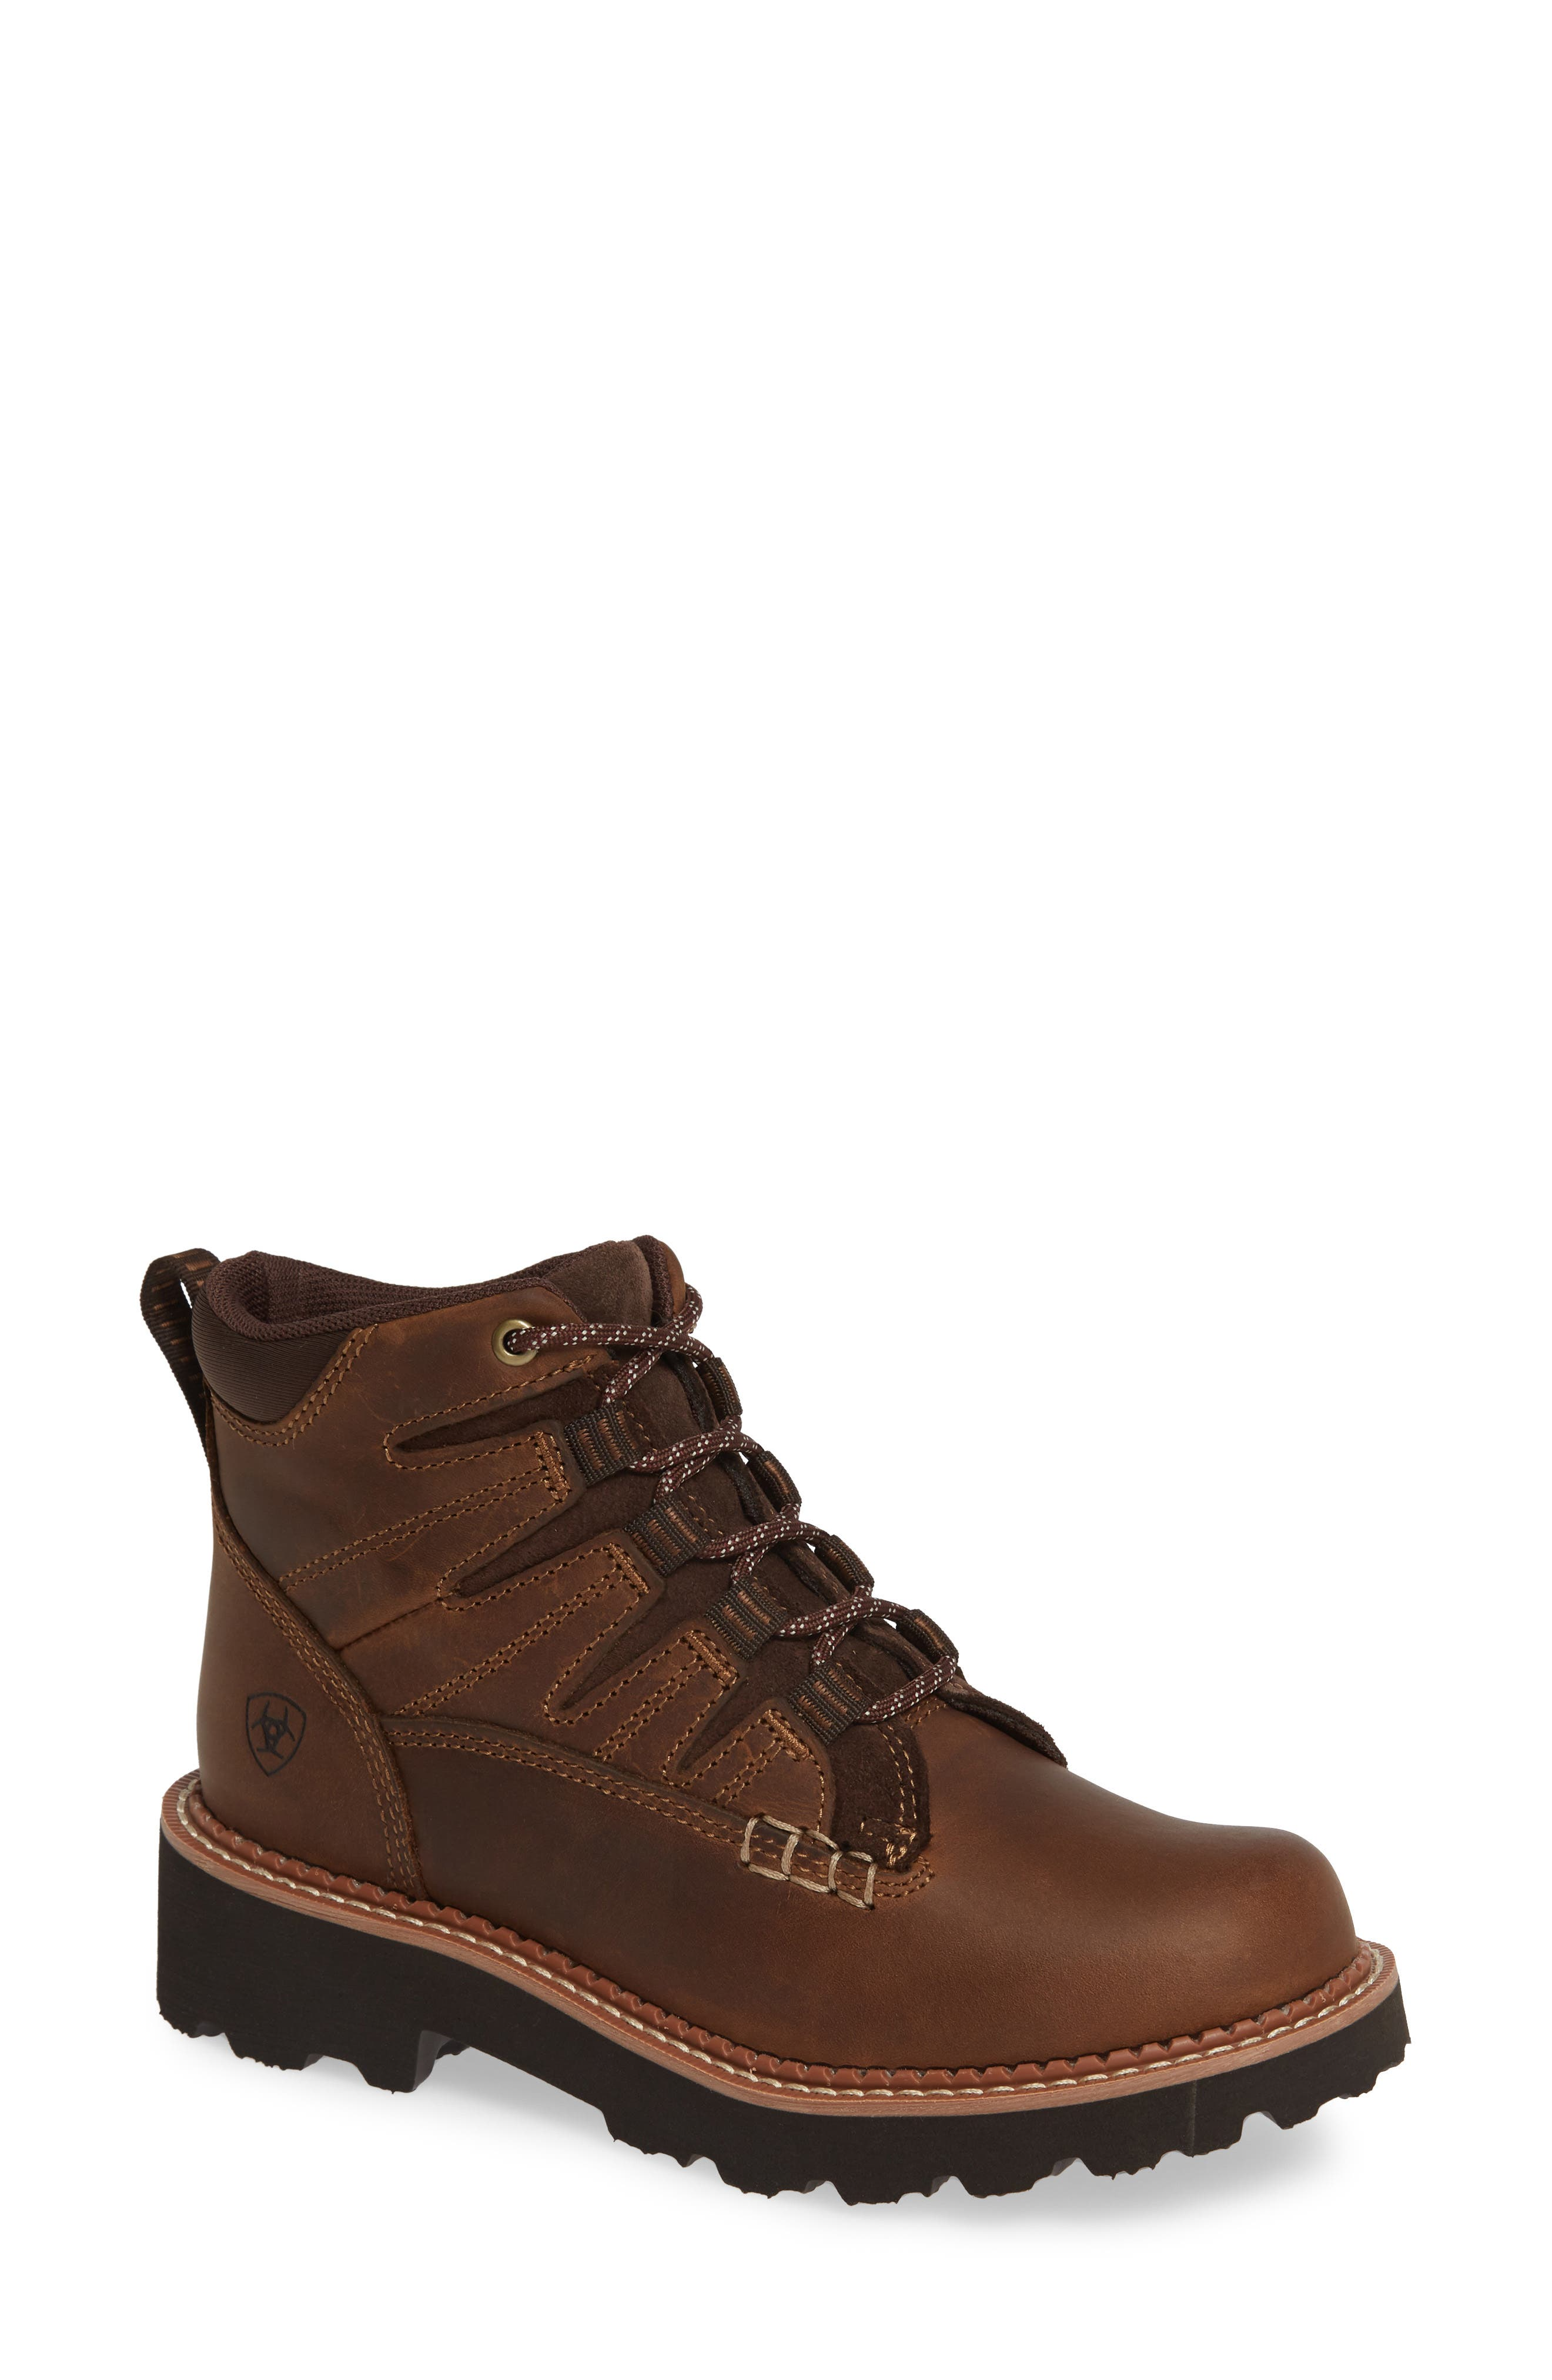 Canyon II Bootie,                             Main thumbnail 1, color,                             DISTRESSED BROWN LEATHER